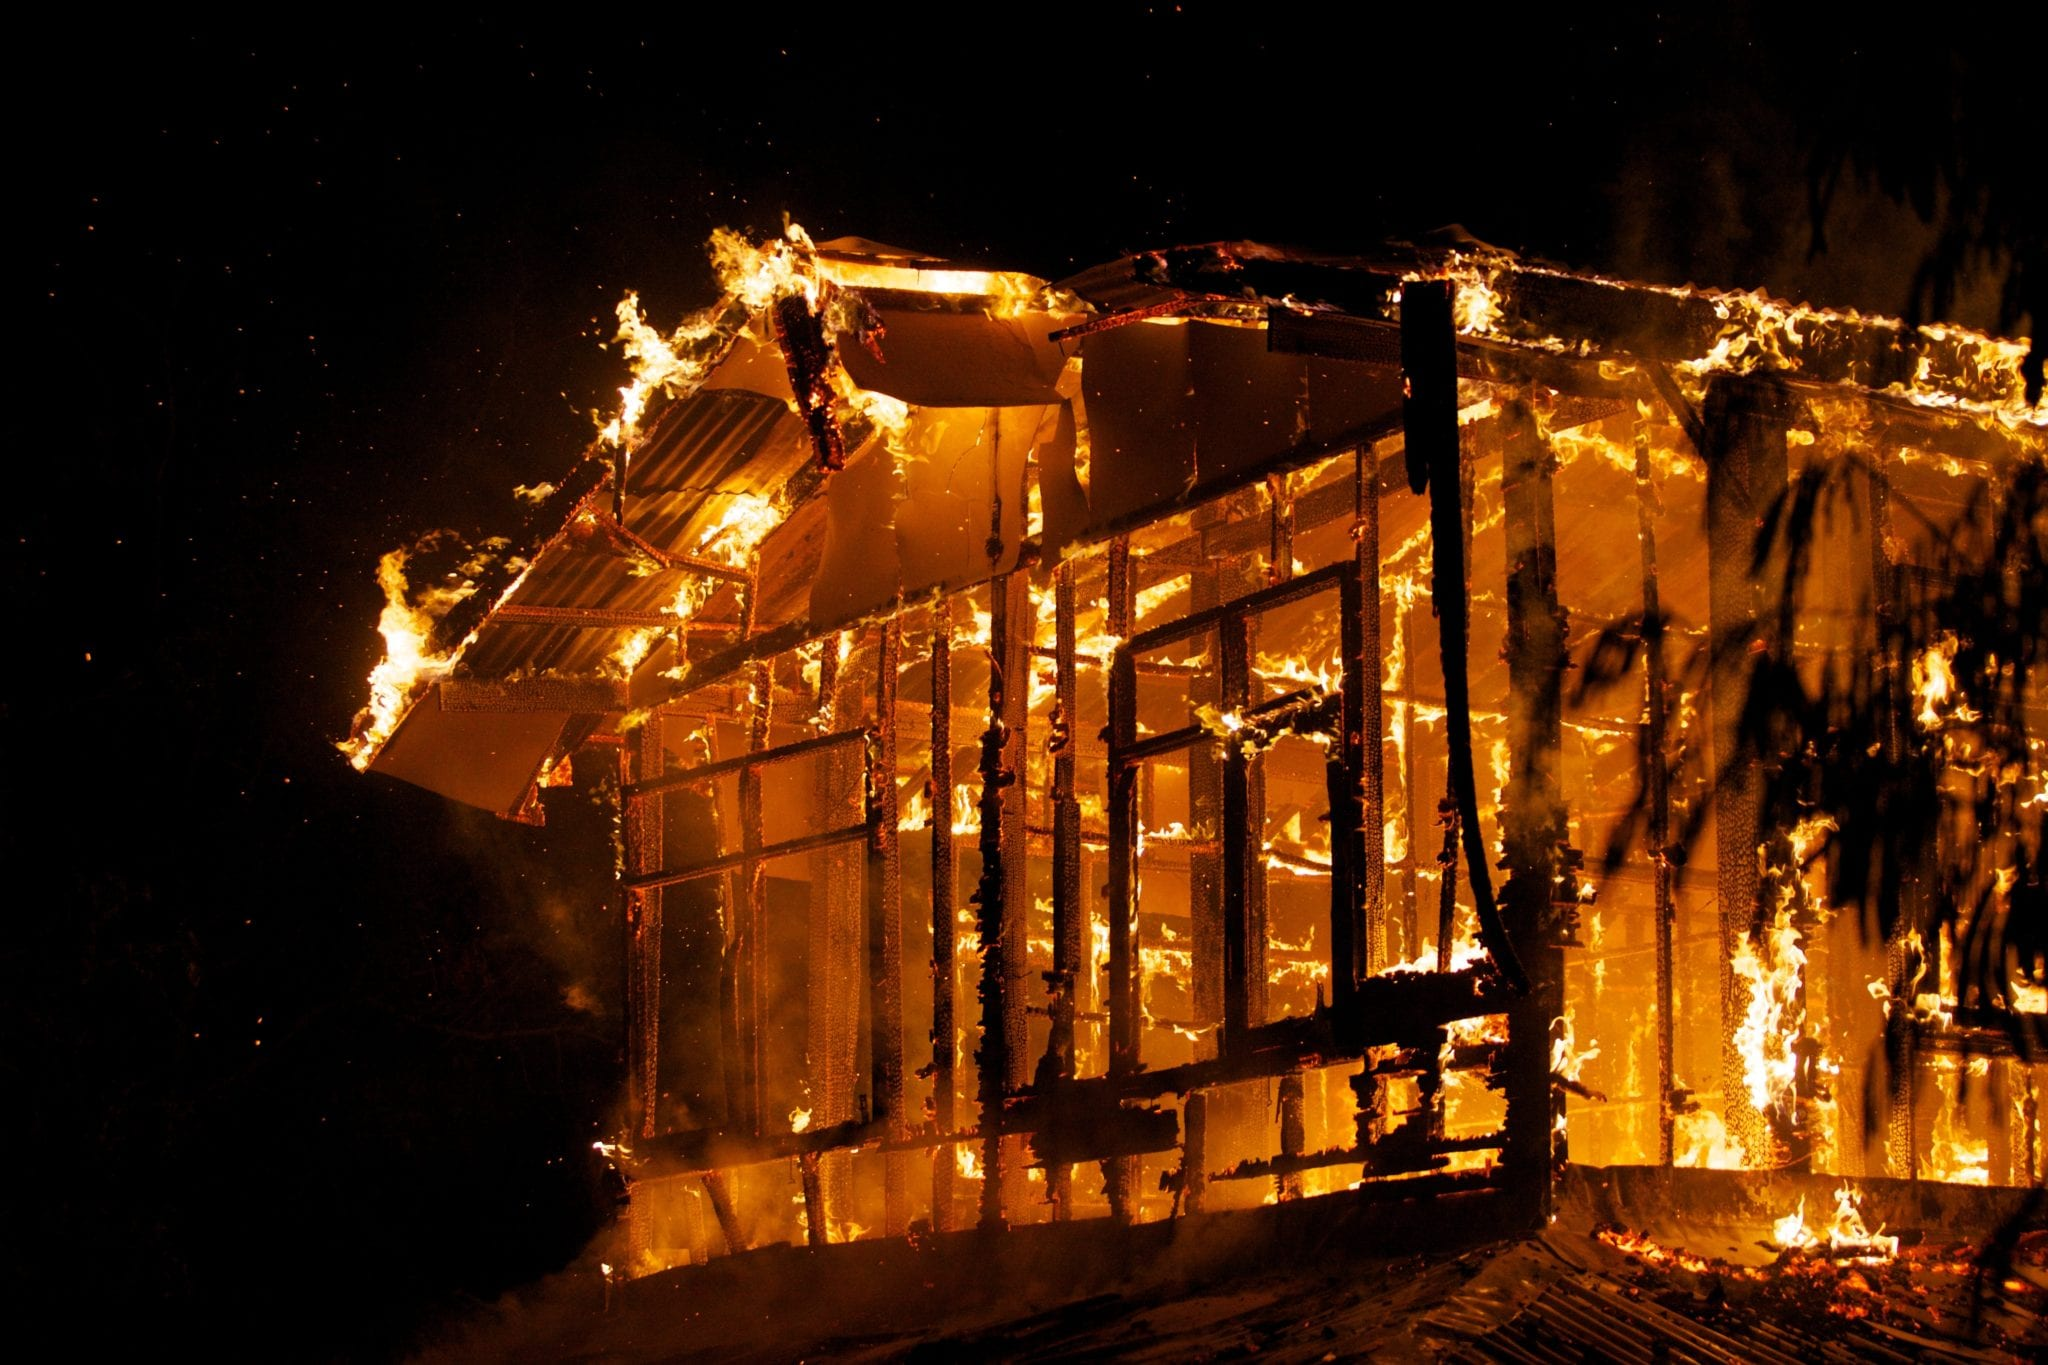 21452753 - house fire in the hot weather.